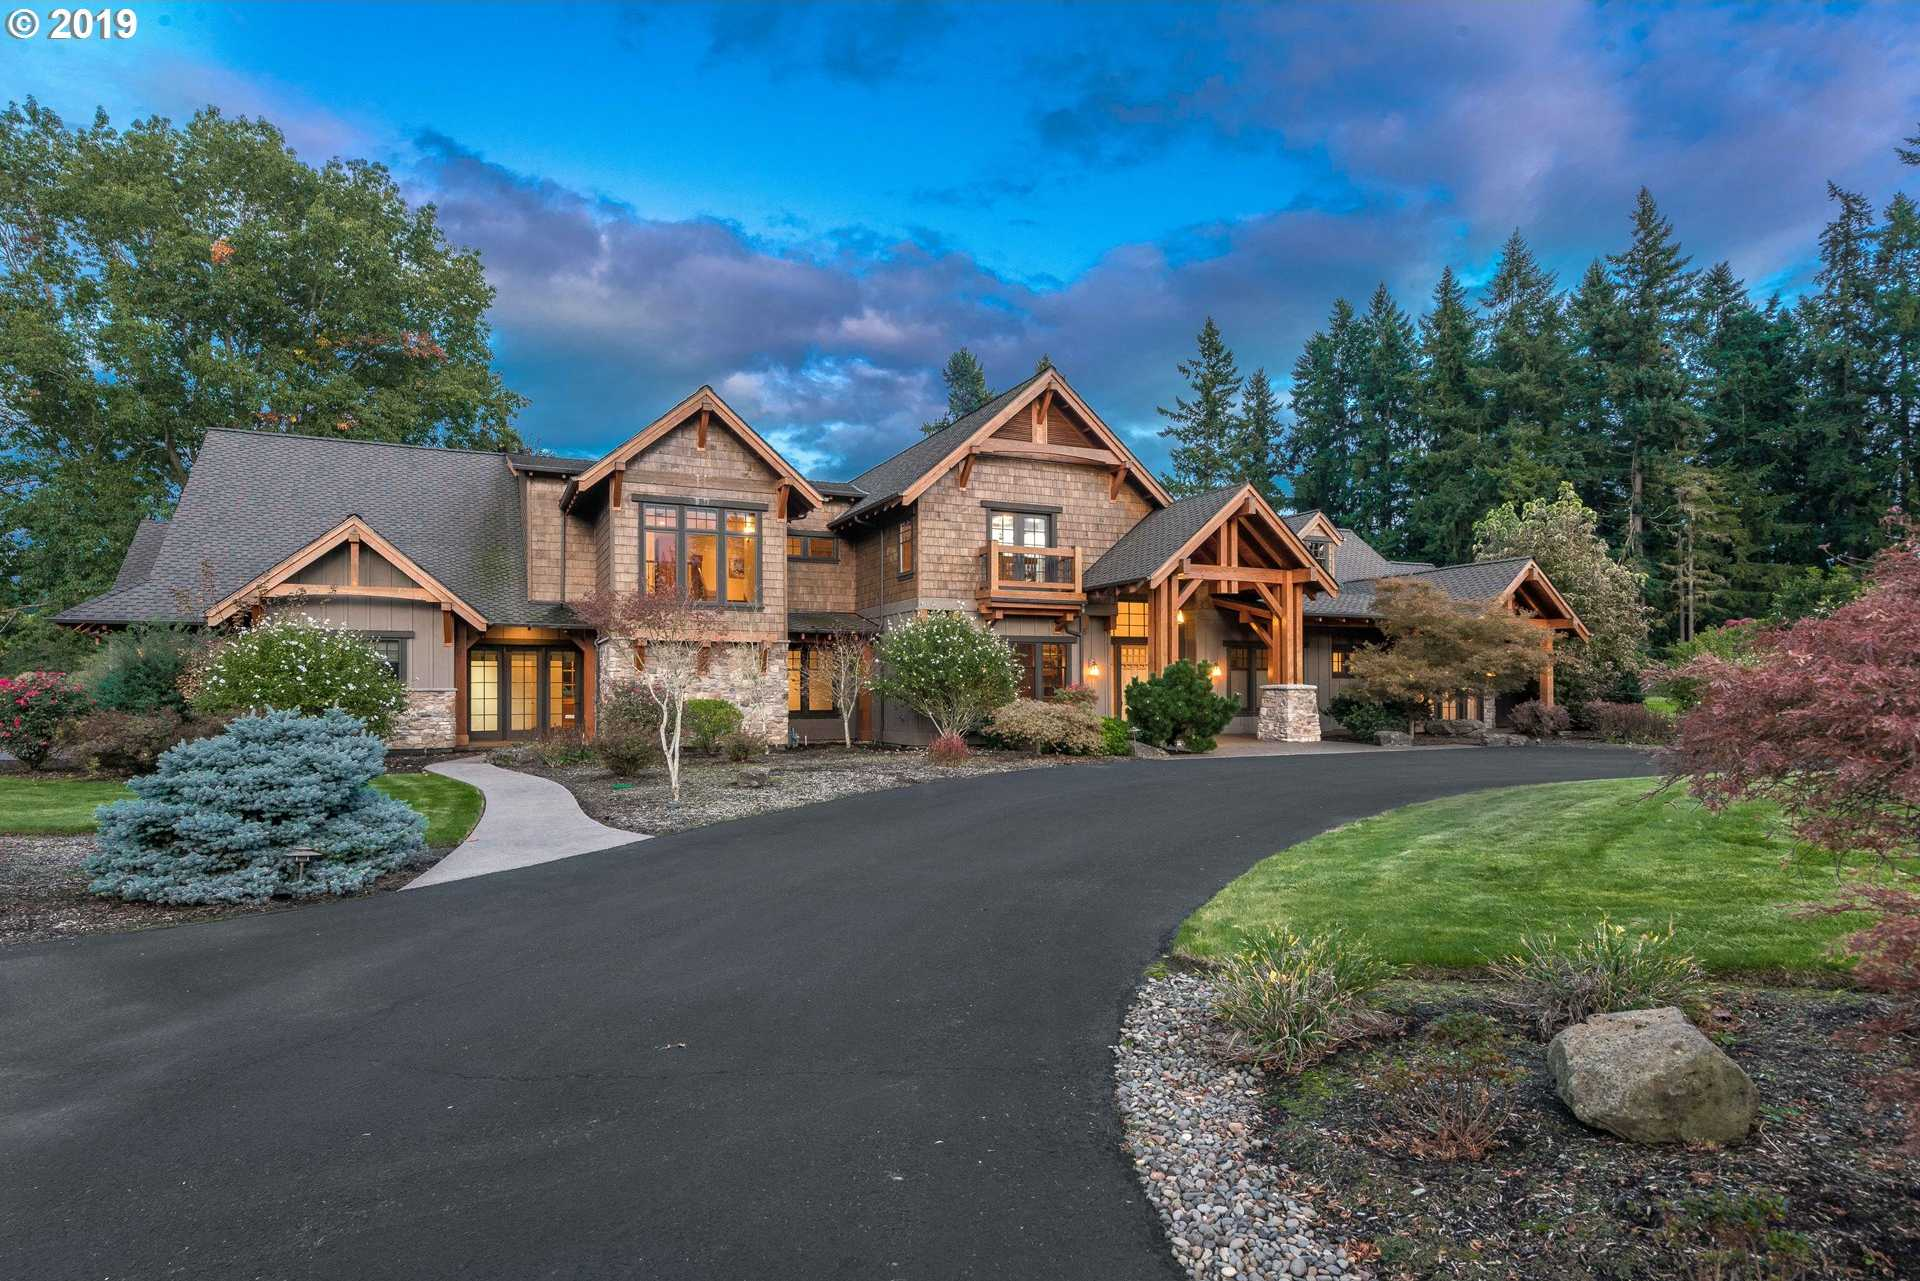 $1,999,950 - 5Br/6Ba -  for Sale in West Linn